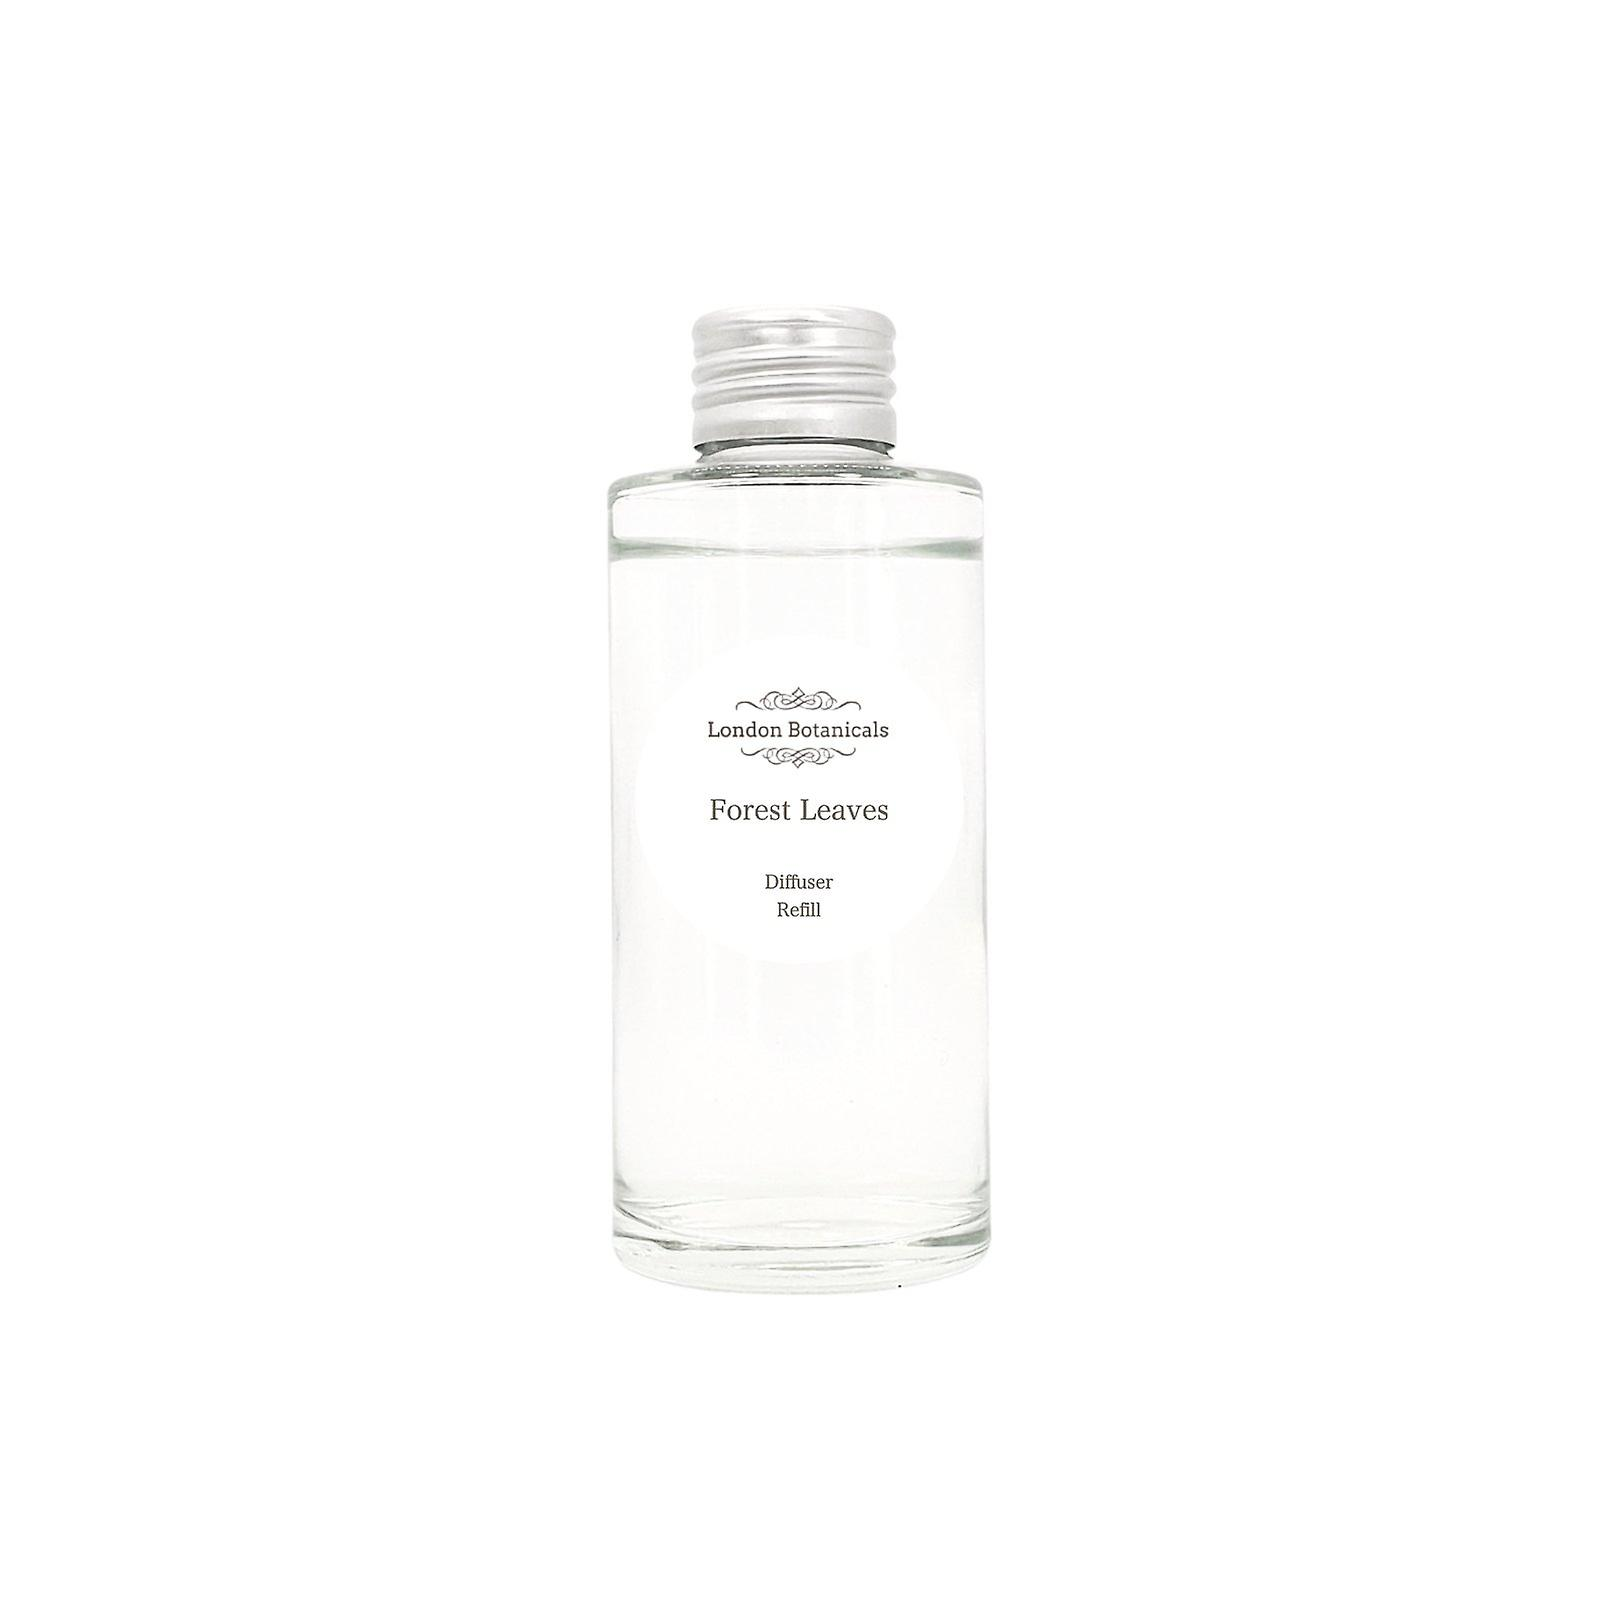 Forest leaves 100ml diffuser refill